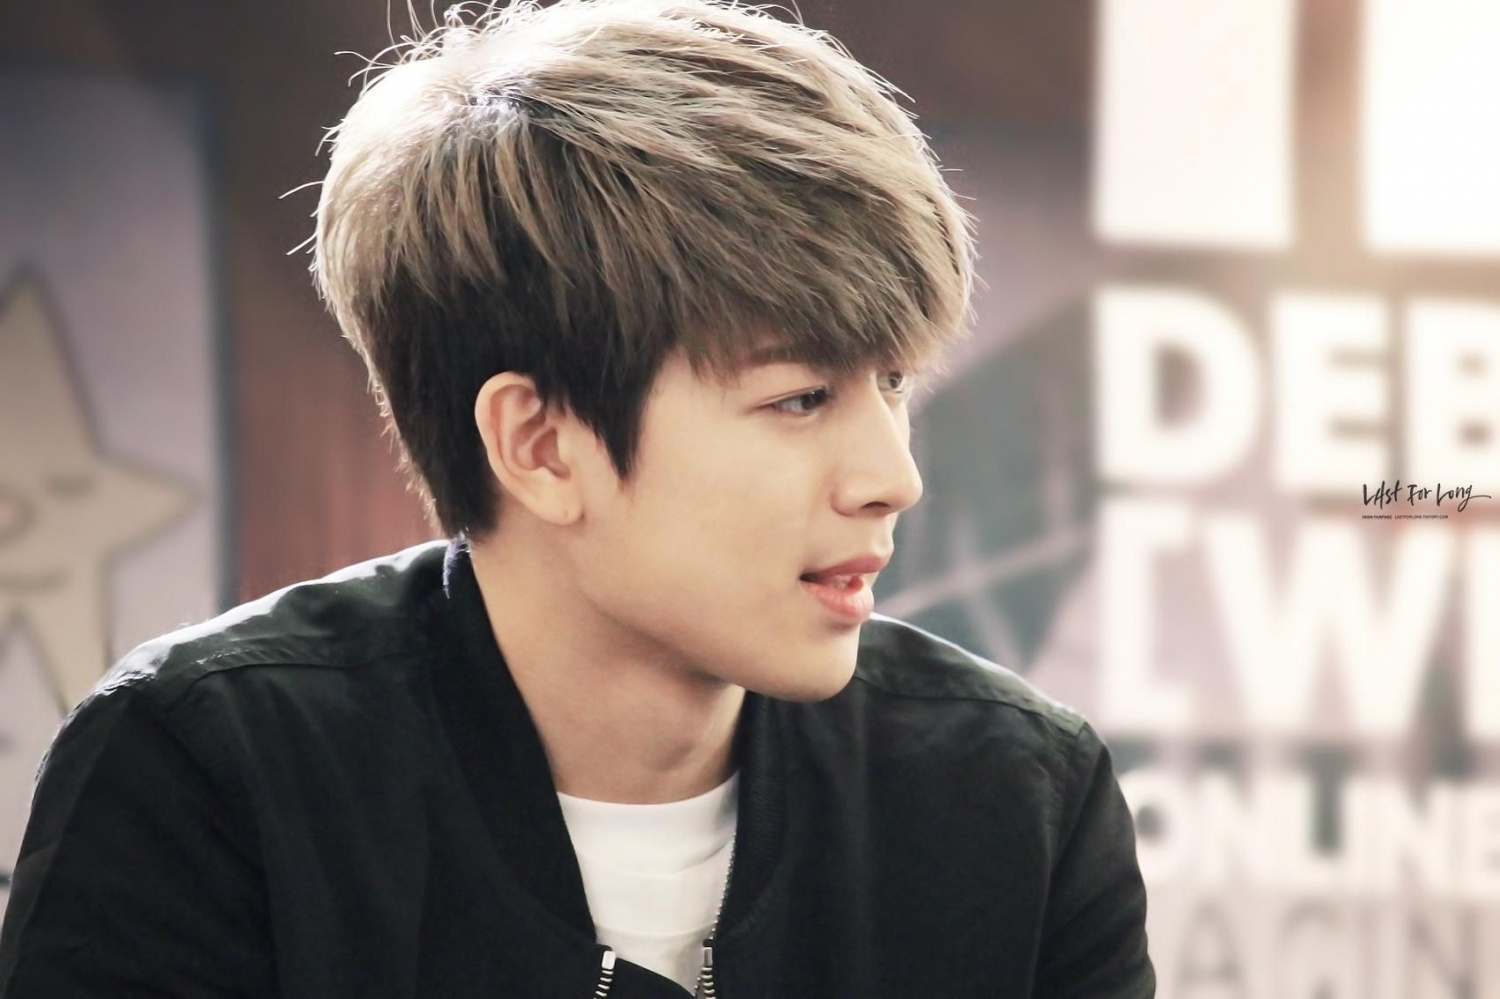 Top 5 Iconic Hairstyles of K-Pop Idols to Inspire Your Next Hairdo